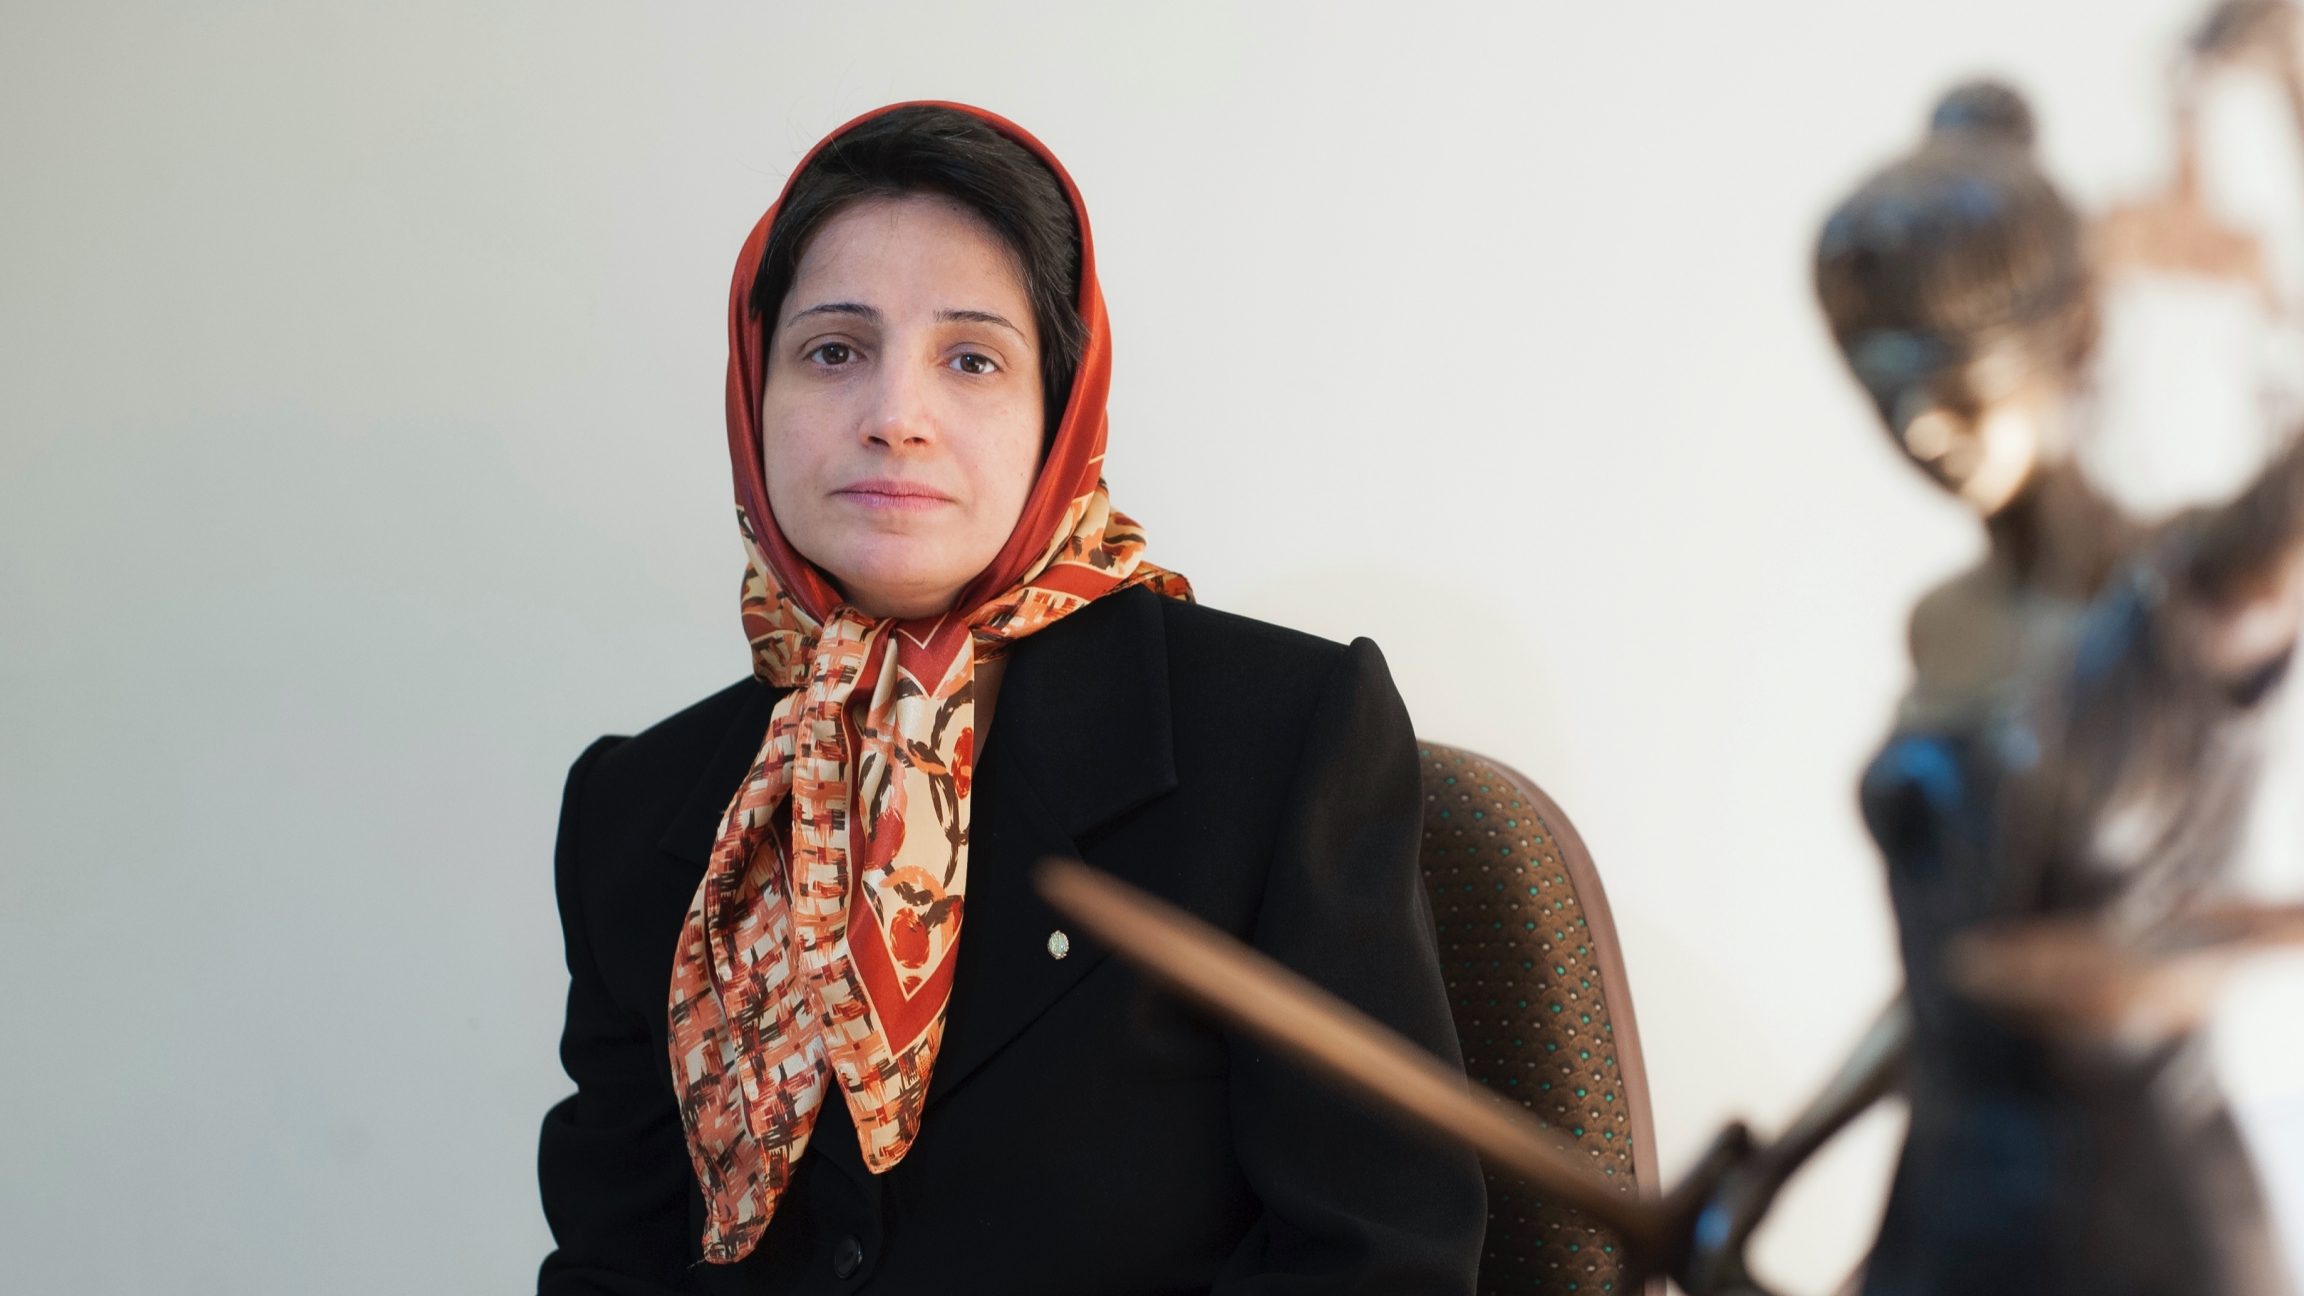 A woman wearing a head scarf sits at her desk and poses for a photograph.